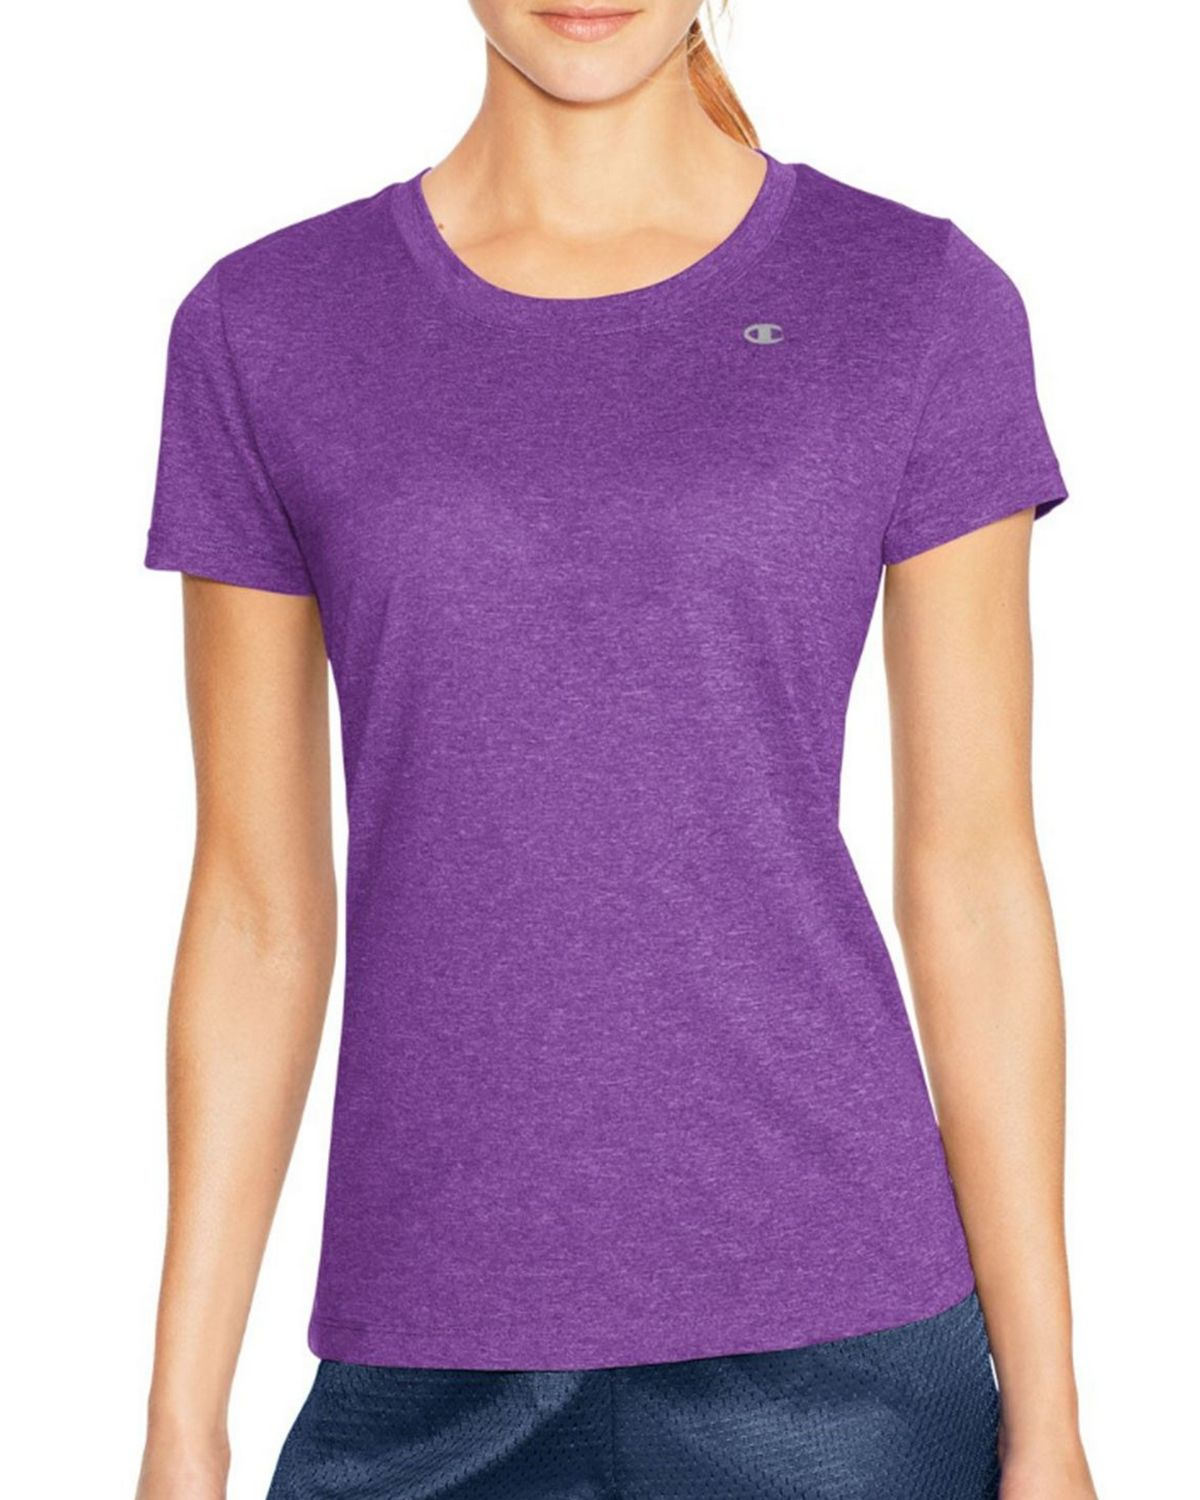 Champion 7963 Vapor PowerTrain Short Sleeve Heather Tee - Purple Reef Heather - XL 7963